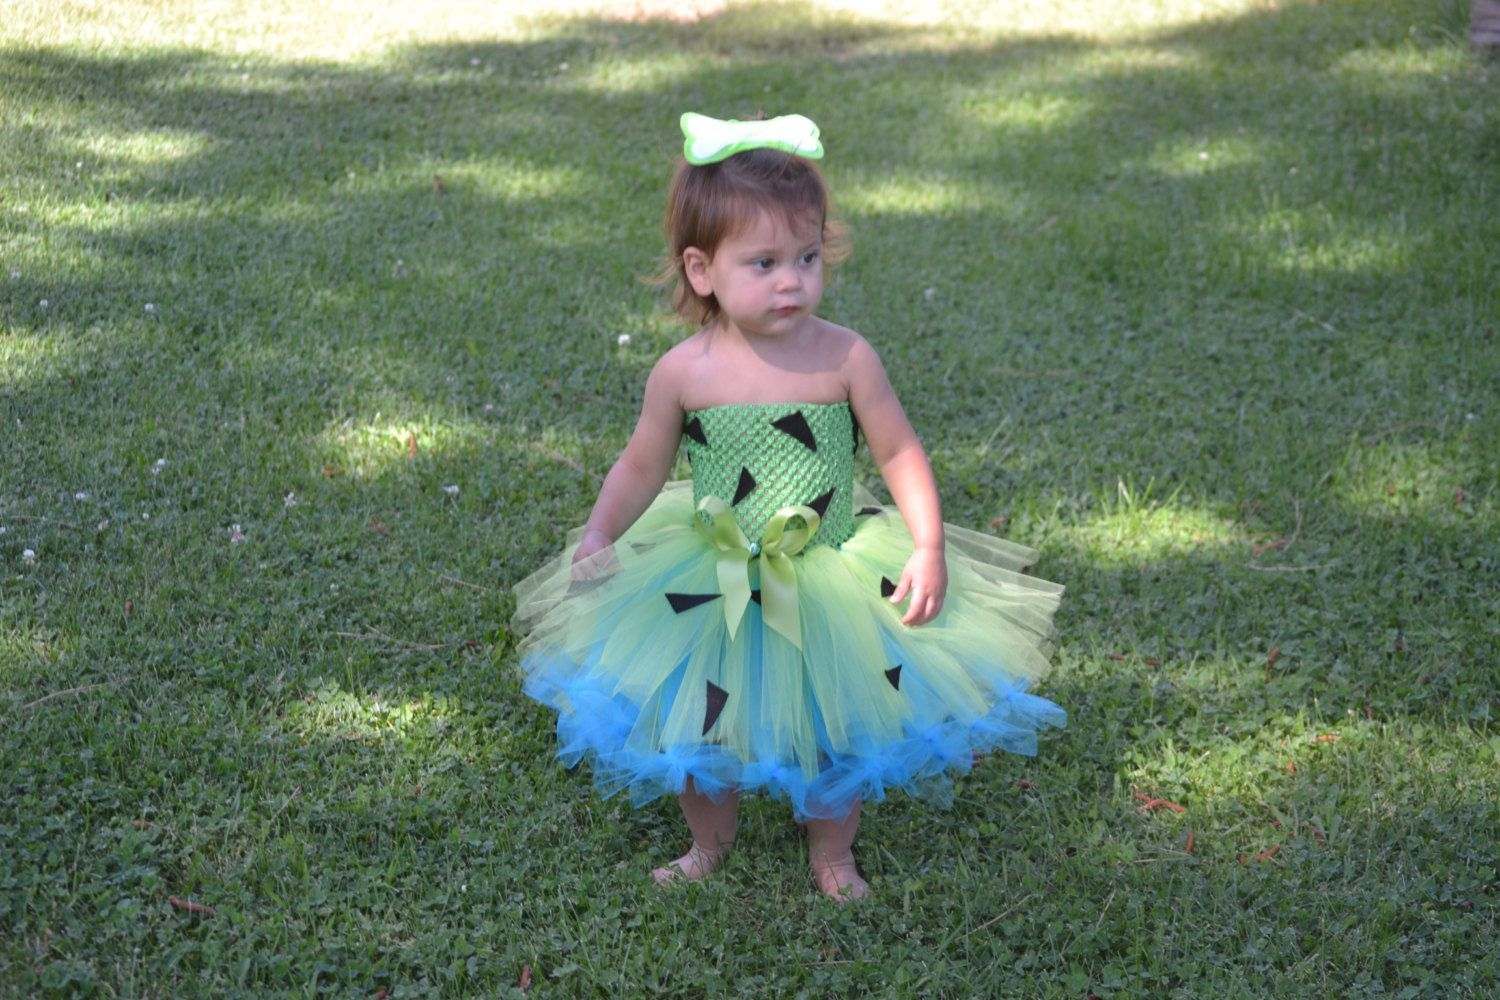 Pebbles Costume for Baby, Toddler Pebbles Costume, Pebbles Flinstone, Pebbles and Bam Bam, Pebbles Tutu, Pebbles Birthday, Flinstones #pebblesandbambamcostumes Pebbles Tutu Dress by AshleysJems on Etsy #pebblesandbambamcostumes